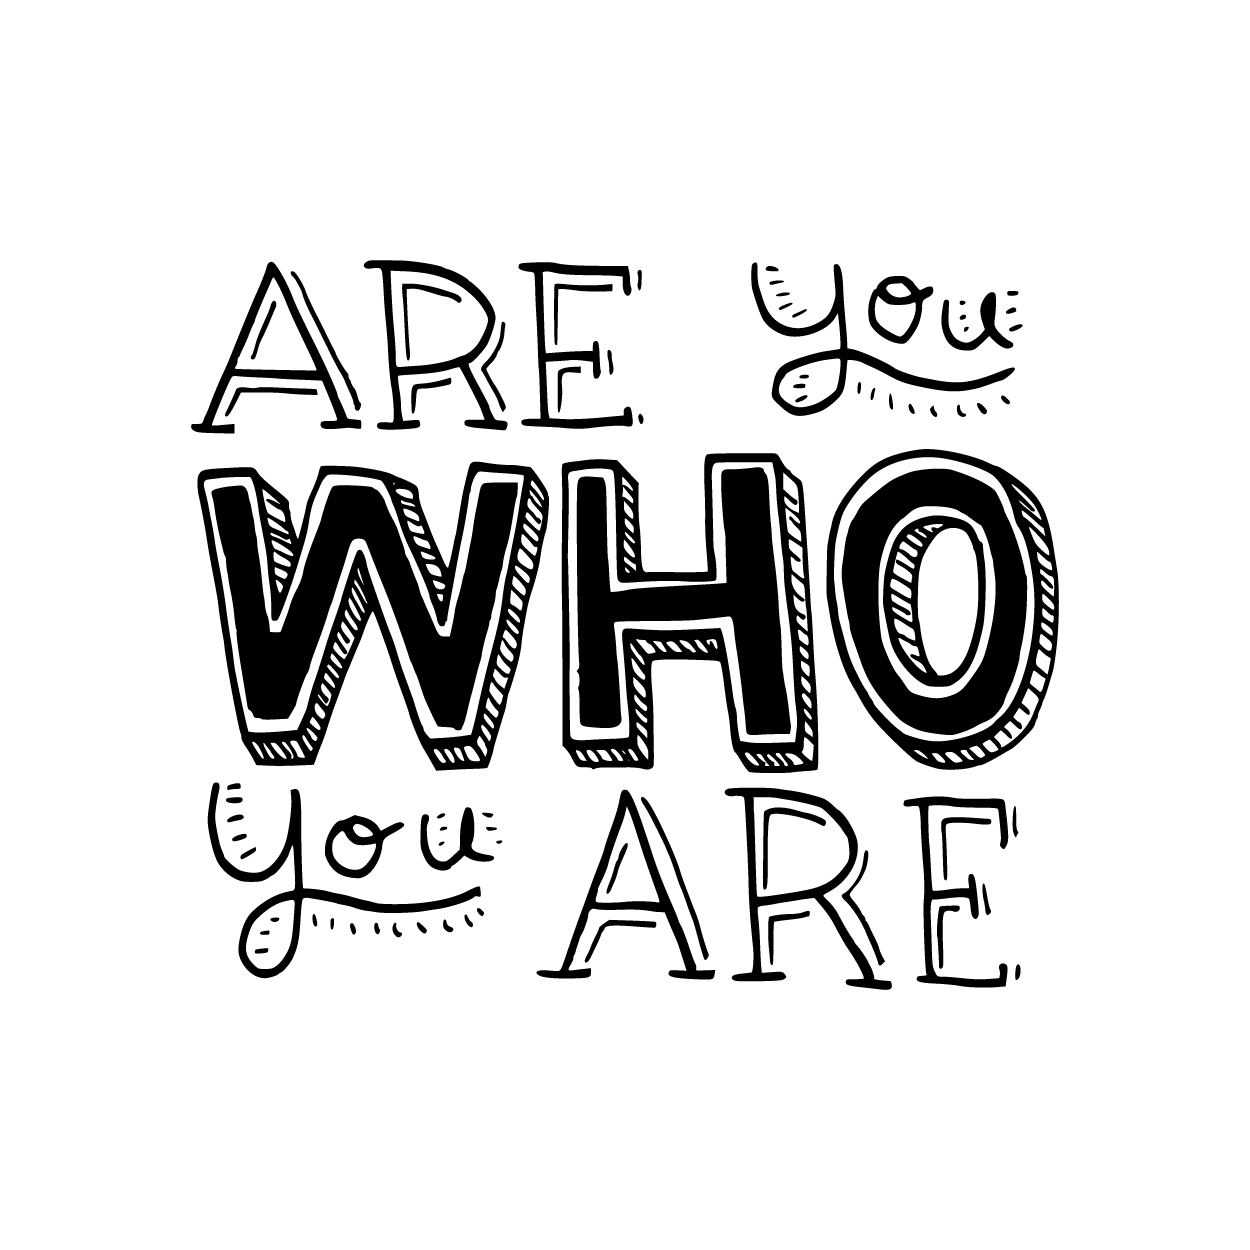 4 Characteristics to Describe Who You Are